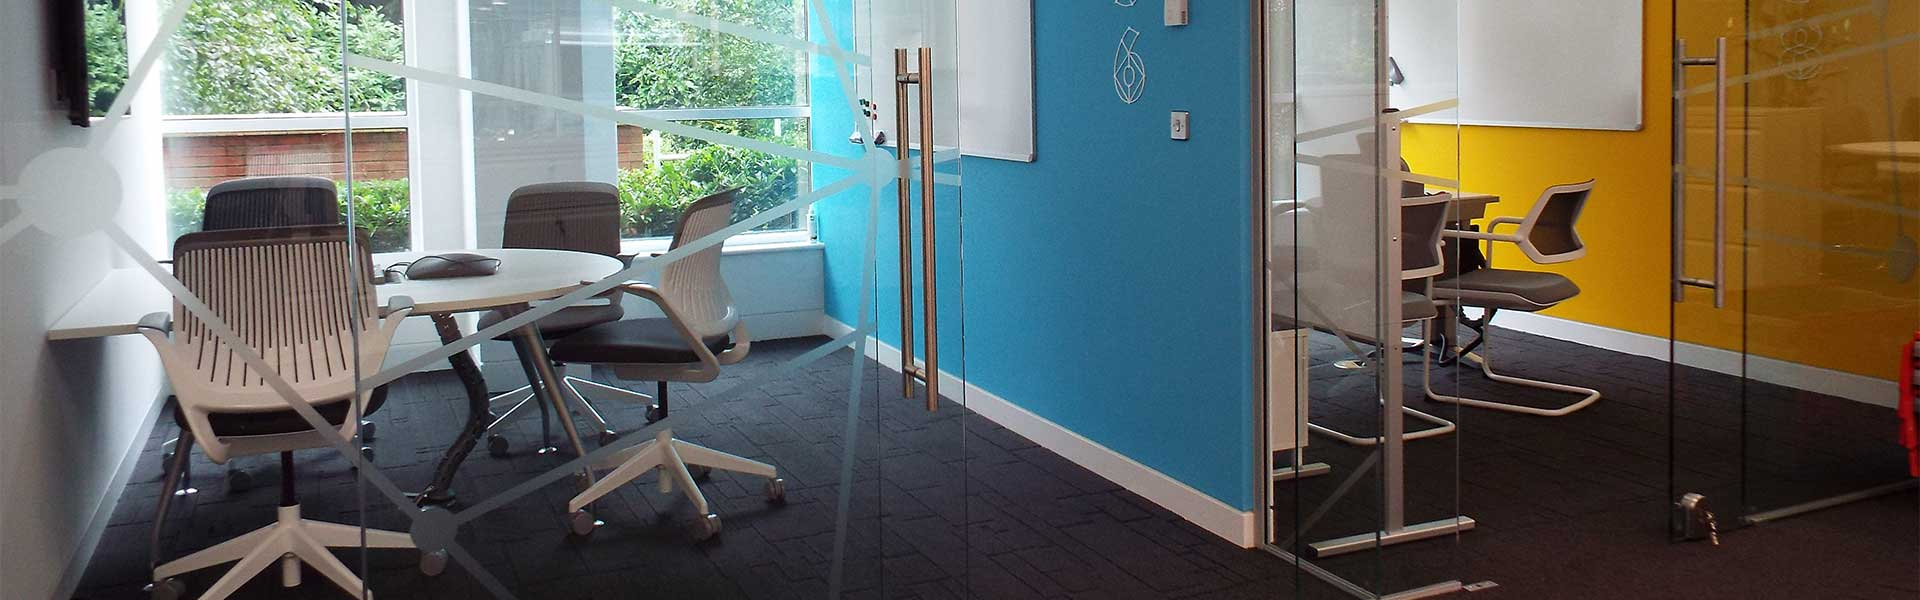 office interior design by bulb interiors